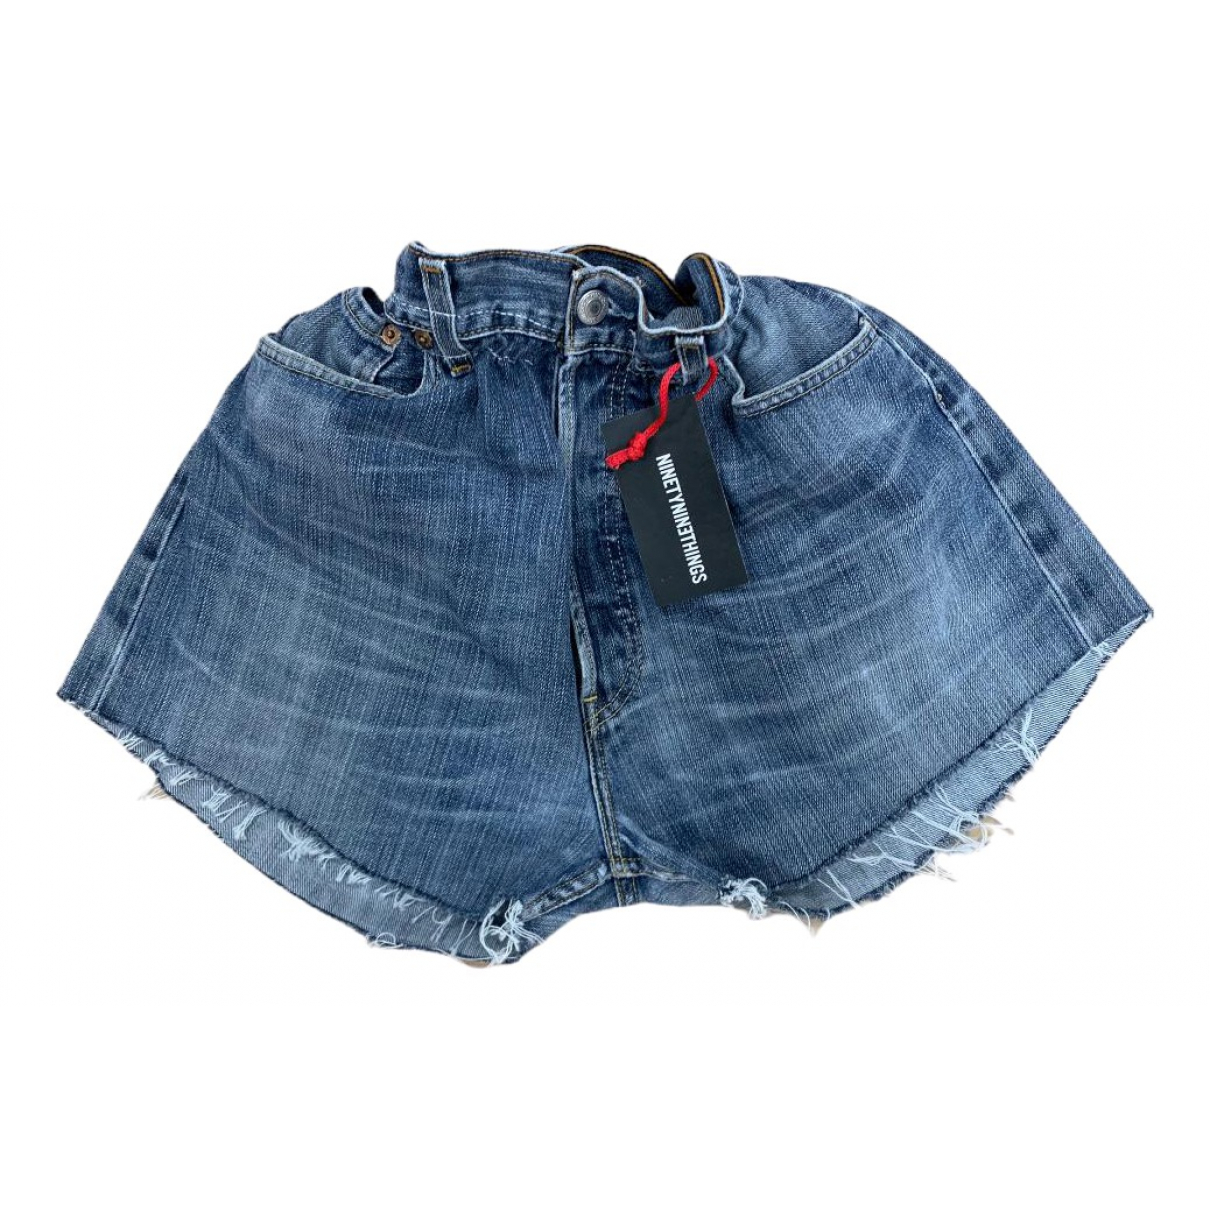 Levi's \N Blue Denim - Jeans Shorts for Women M International